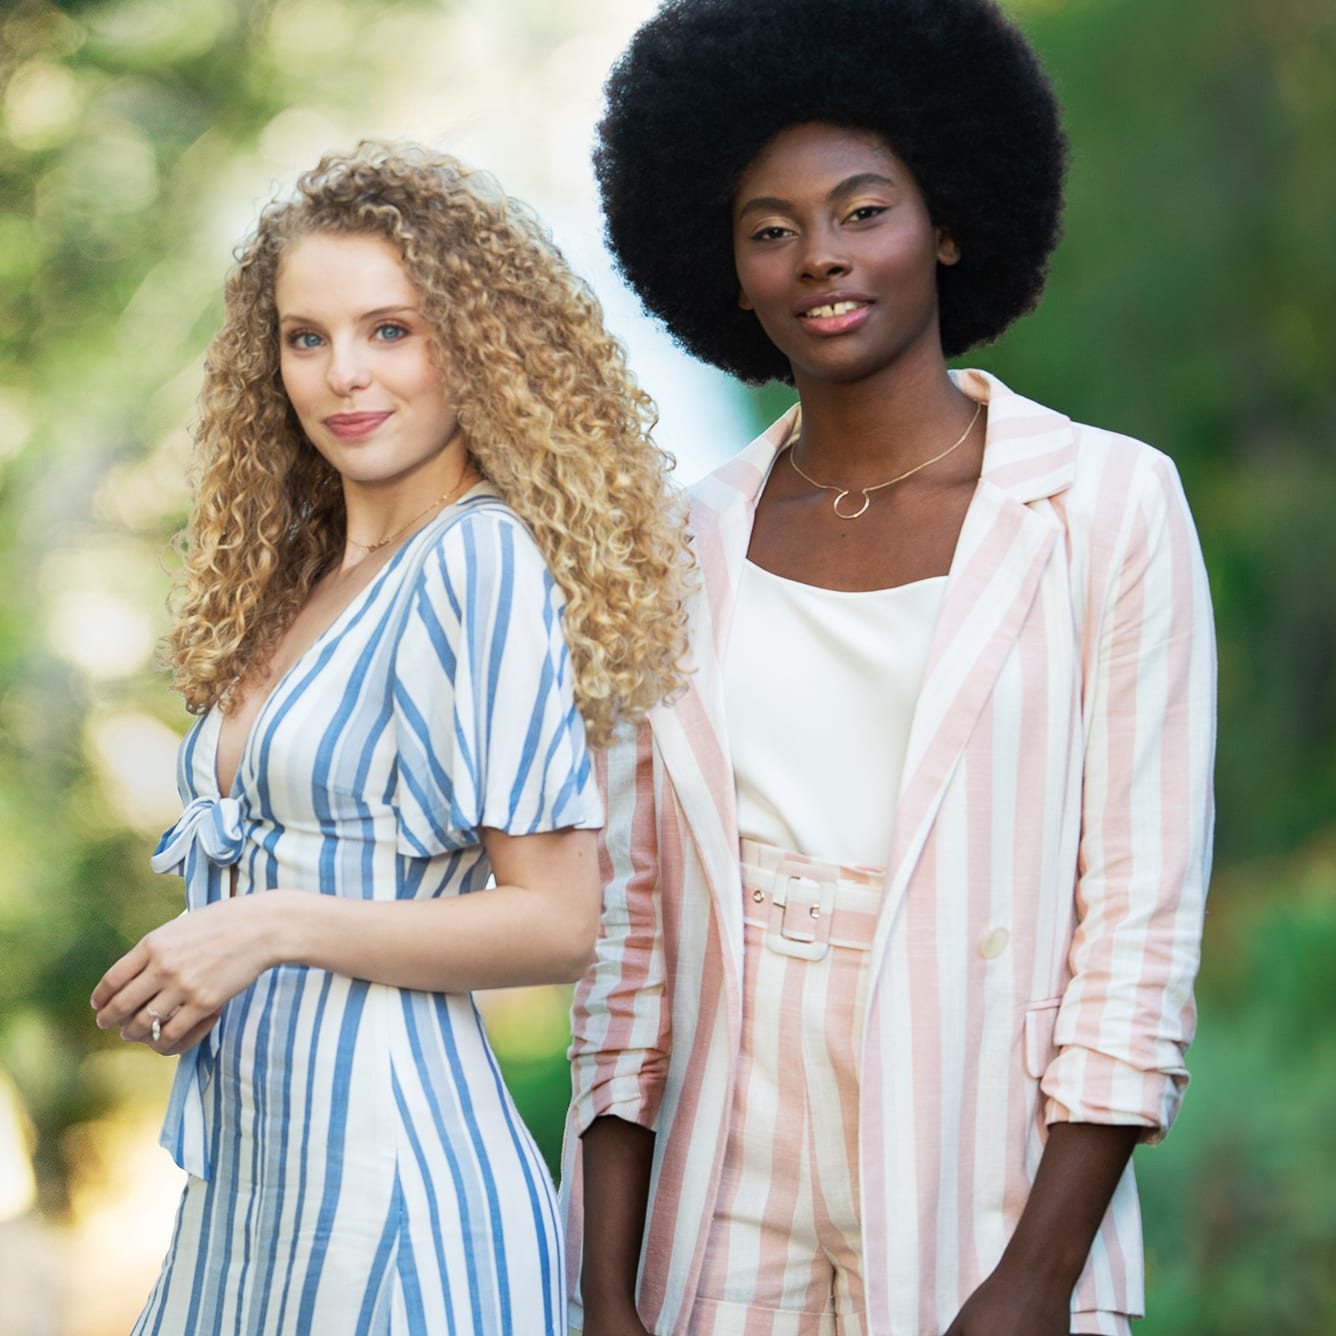 woman with long blonde curly hair and woman with a full curly afro